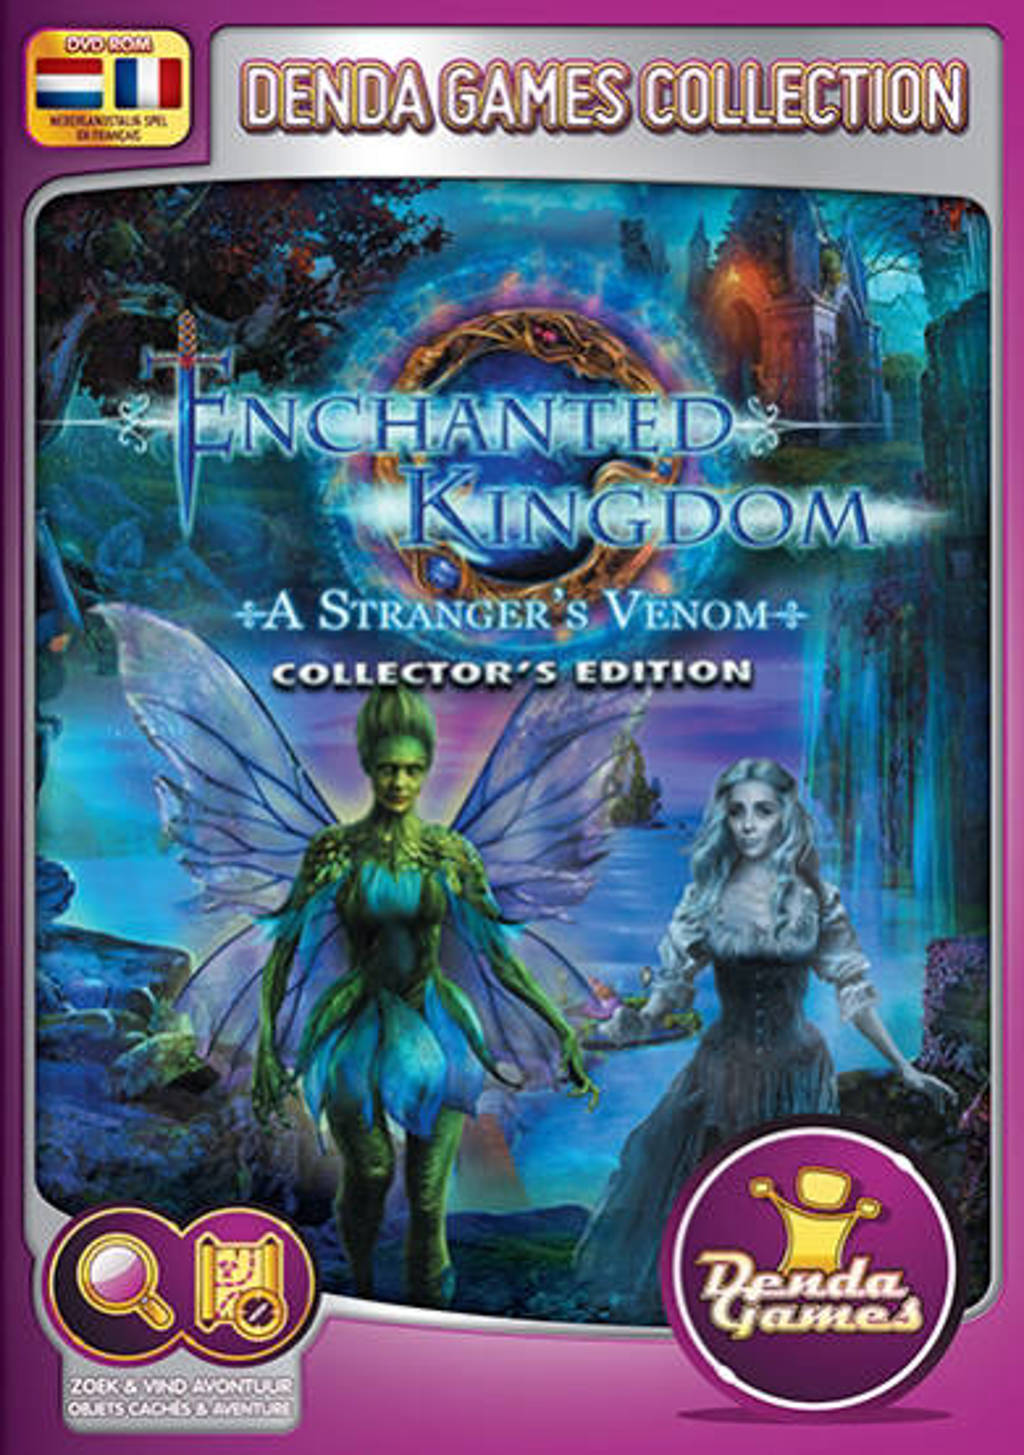 Enchanted kingdom - A strangers venom (Collectors edition) (PC)